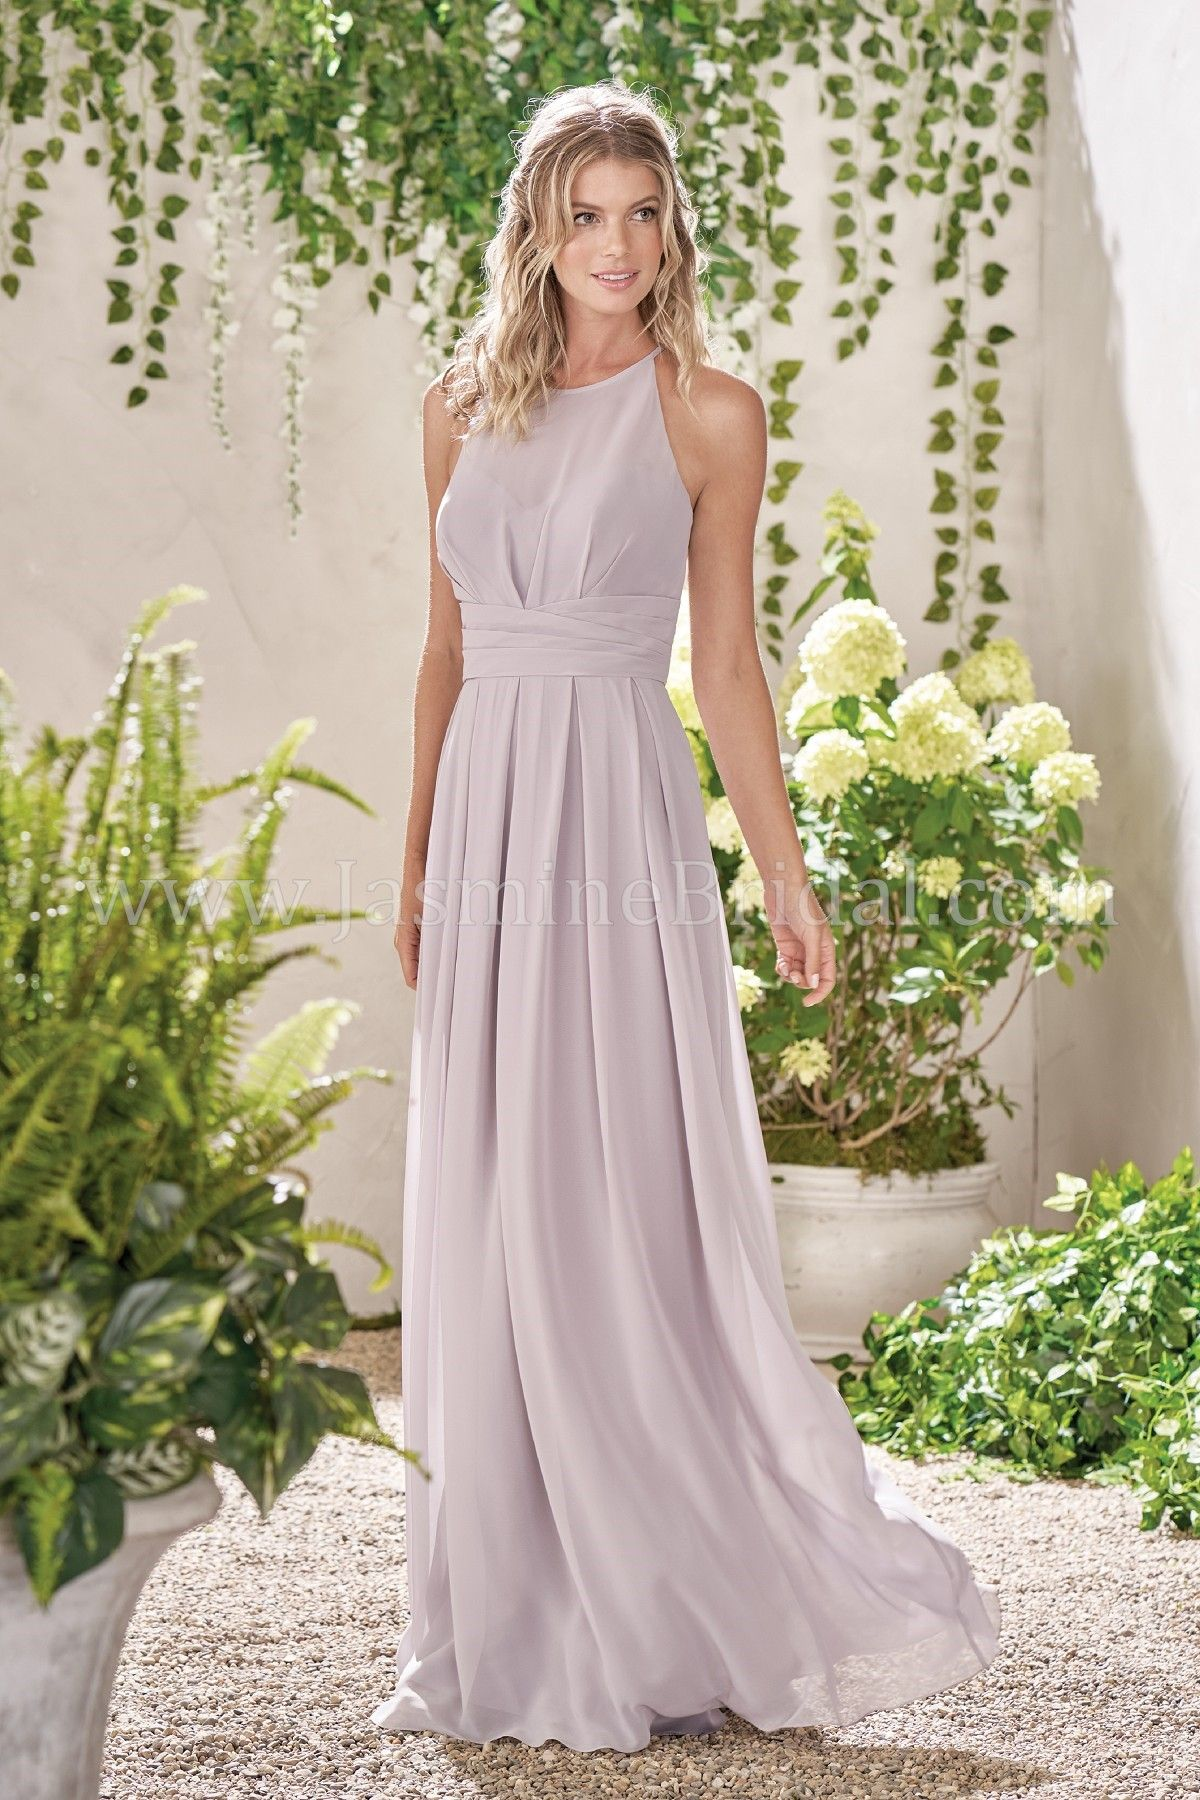 2efdd7cc5606 *Jasmine Bridal, B193009, Sz 14, Graphite, $196 Available at Debra's Bridal  Jacksonville, FL 32256 Contact us to make an Apt (904) 519 9900